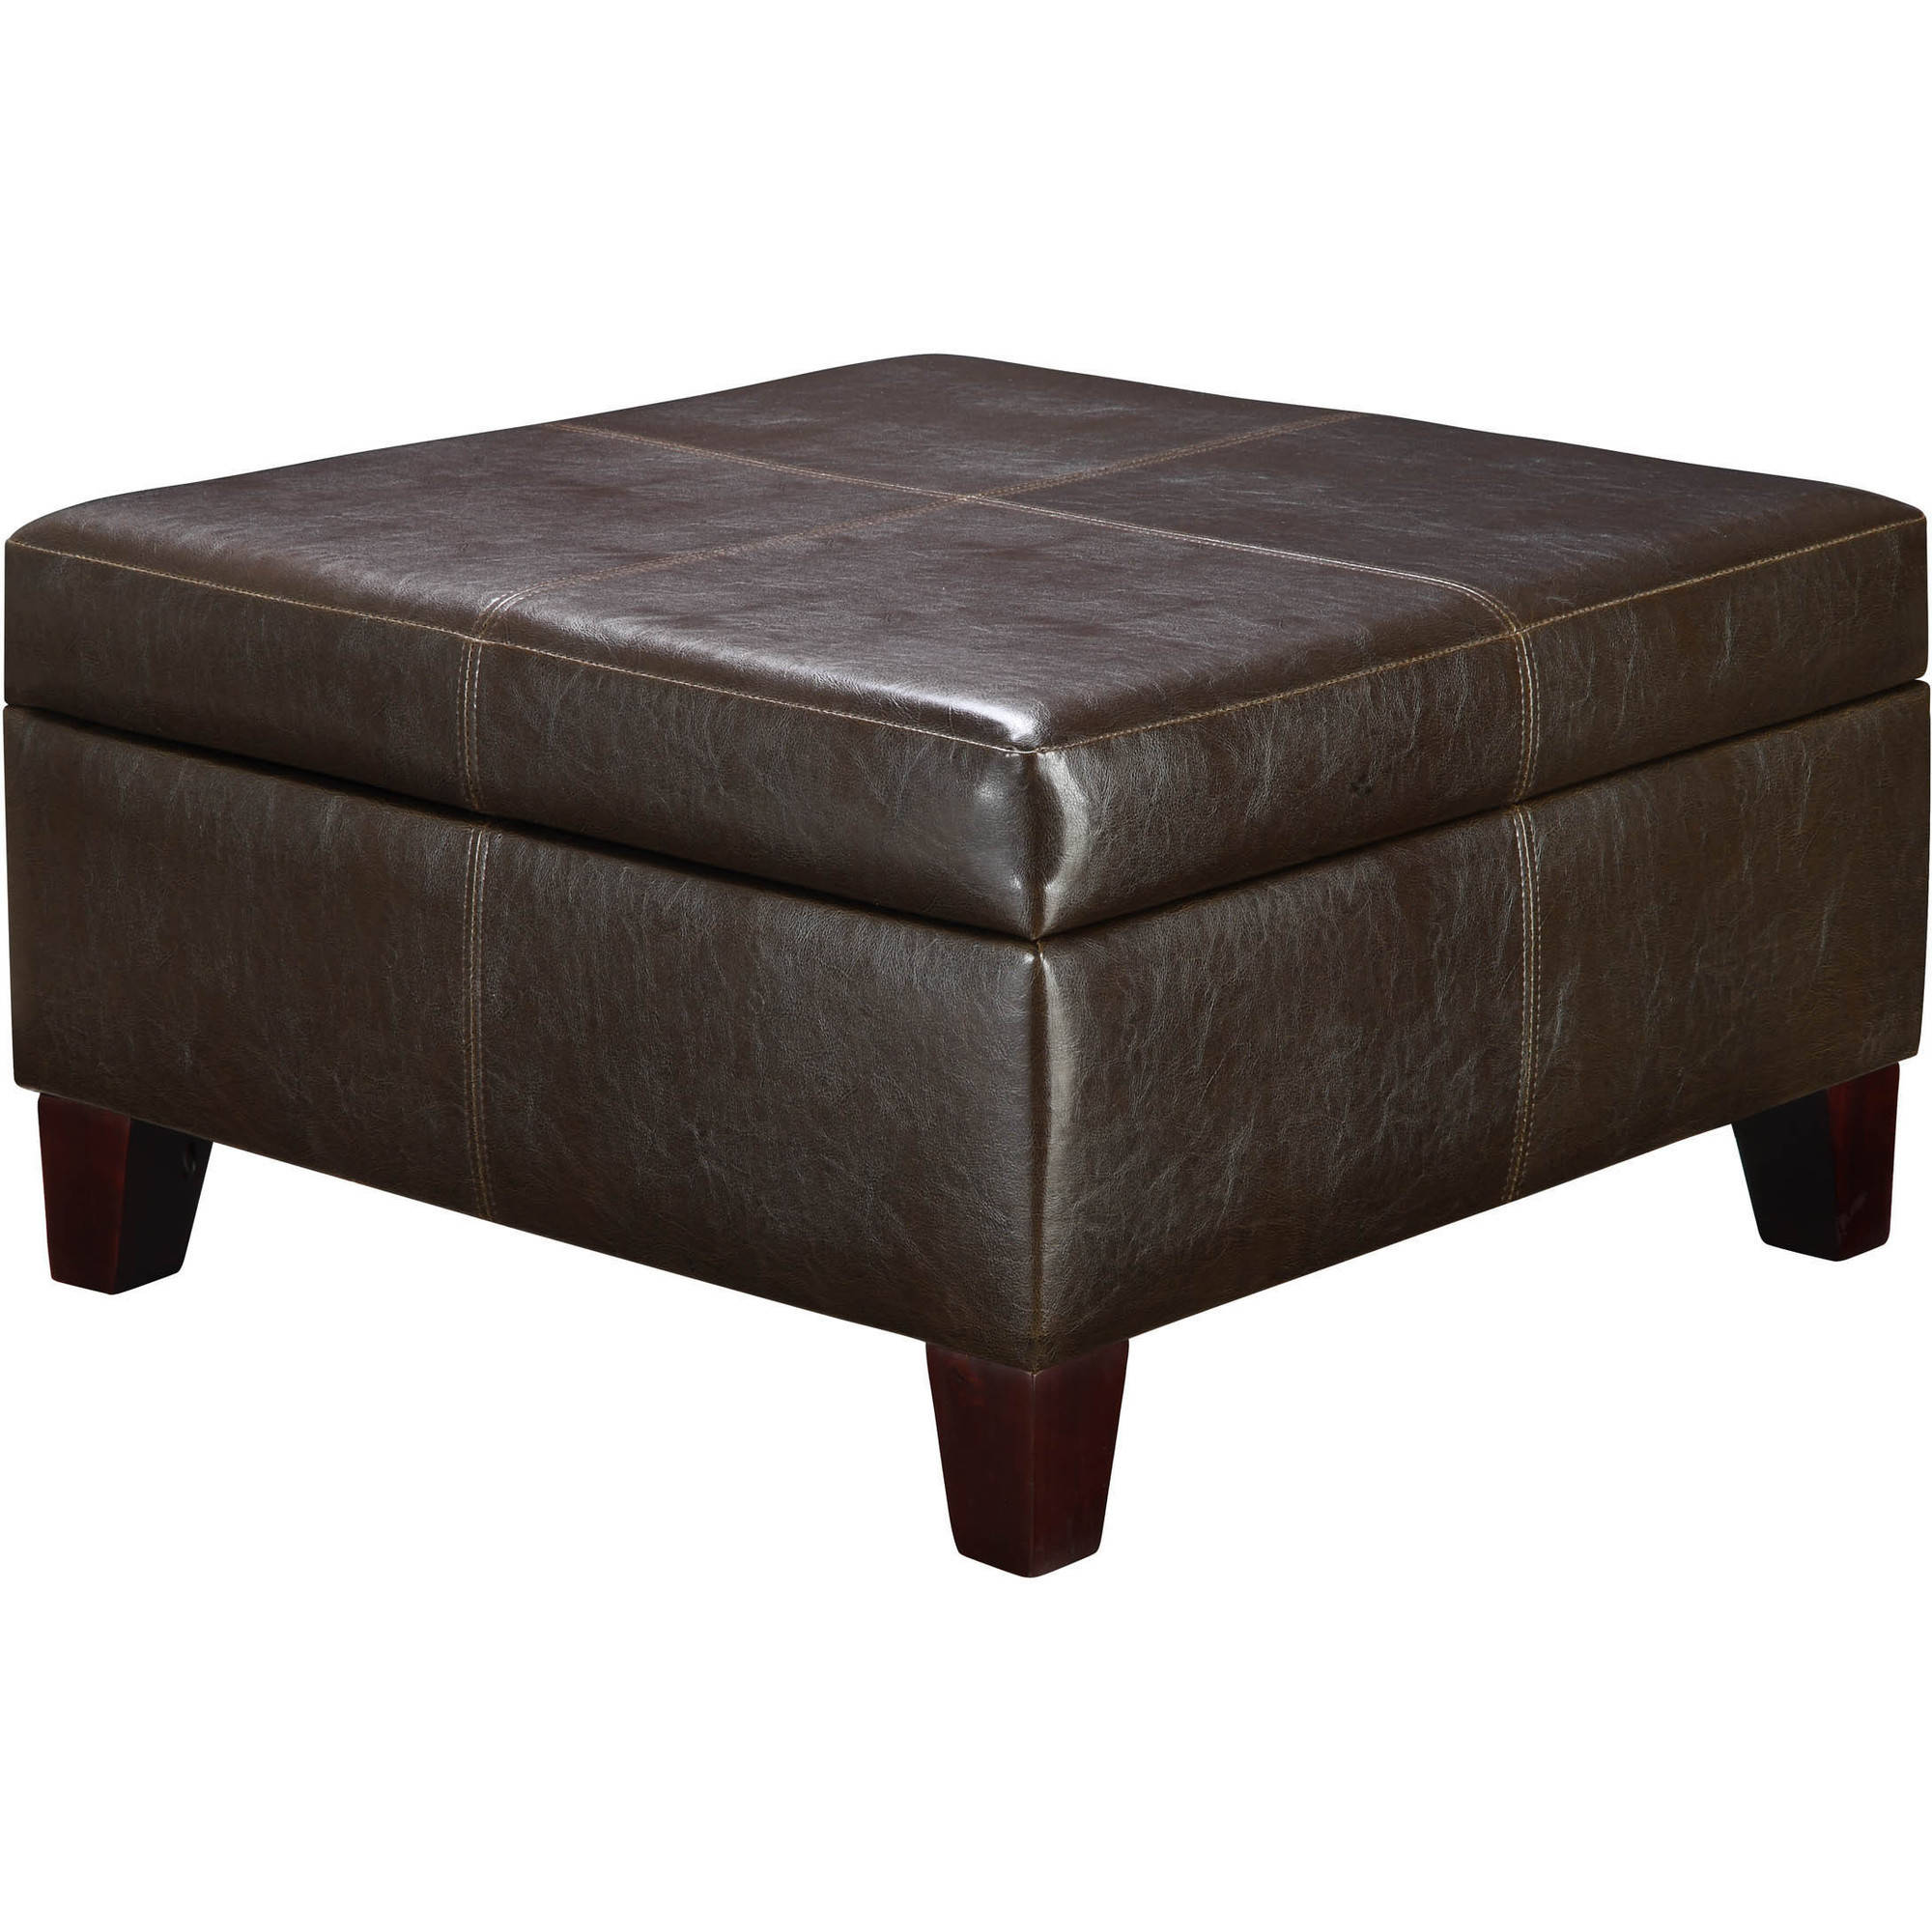 Dorel Living Square Storage Ottoman, Multiple Colors